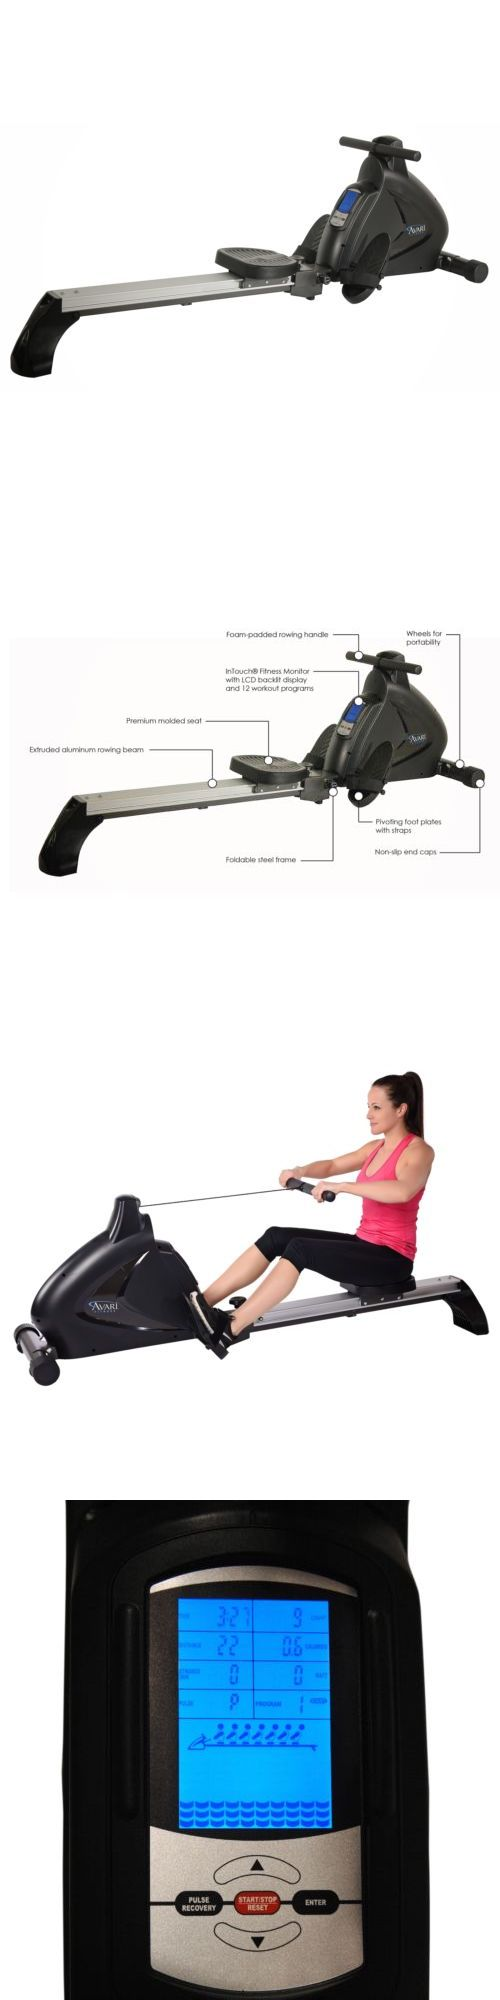 Rowing Machines 28060: Avari Programmable Magnetic Rower By Stamina -> BUY IT NOW ONLY: $842.22 on eBay!